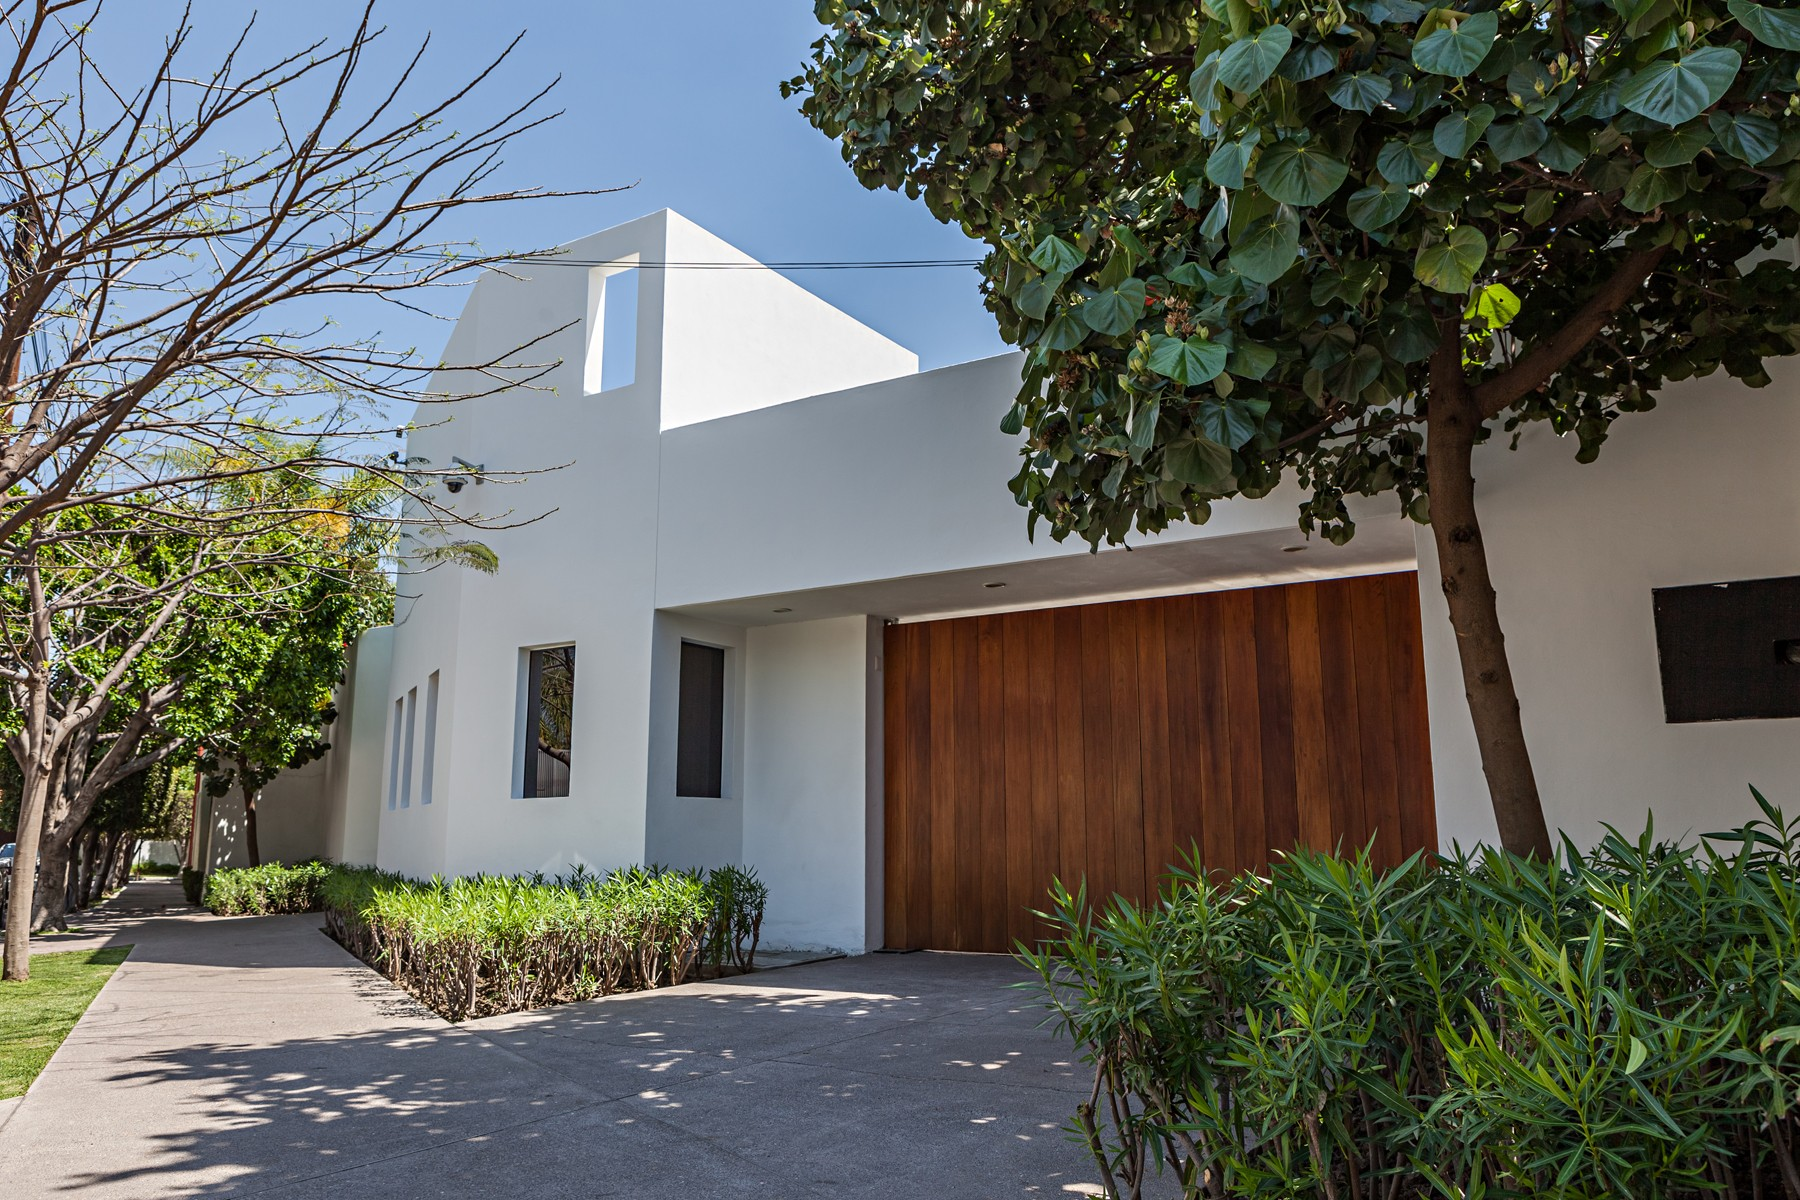 Single Family Home for Sale at Luxury Contemporary Residence in Zapopan Guadalajara, Jalisco 45110 Mexico